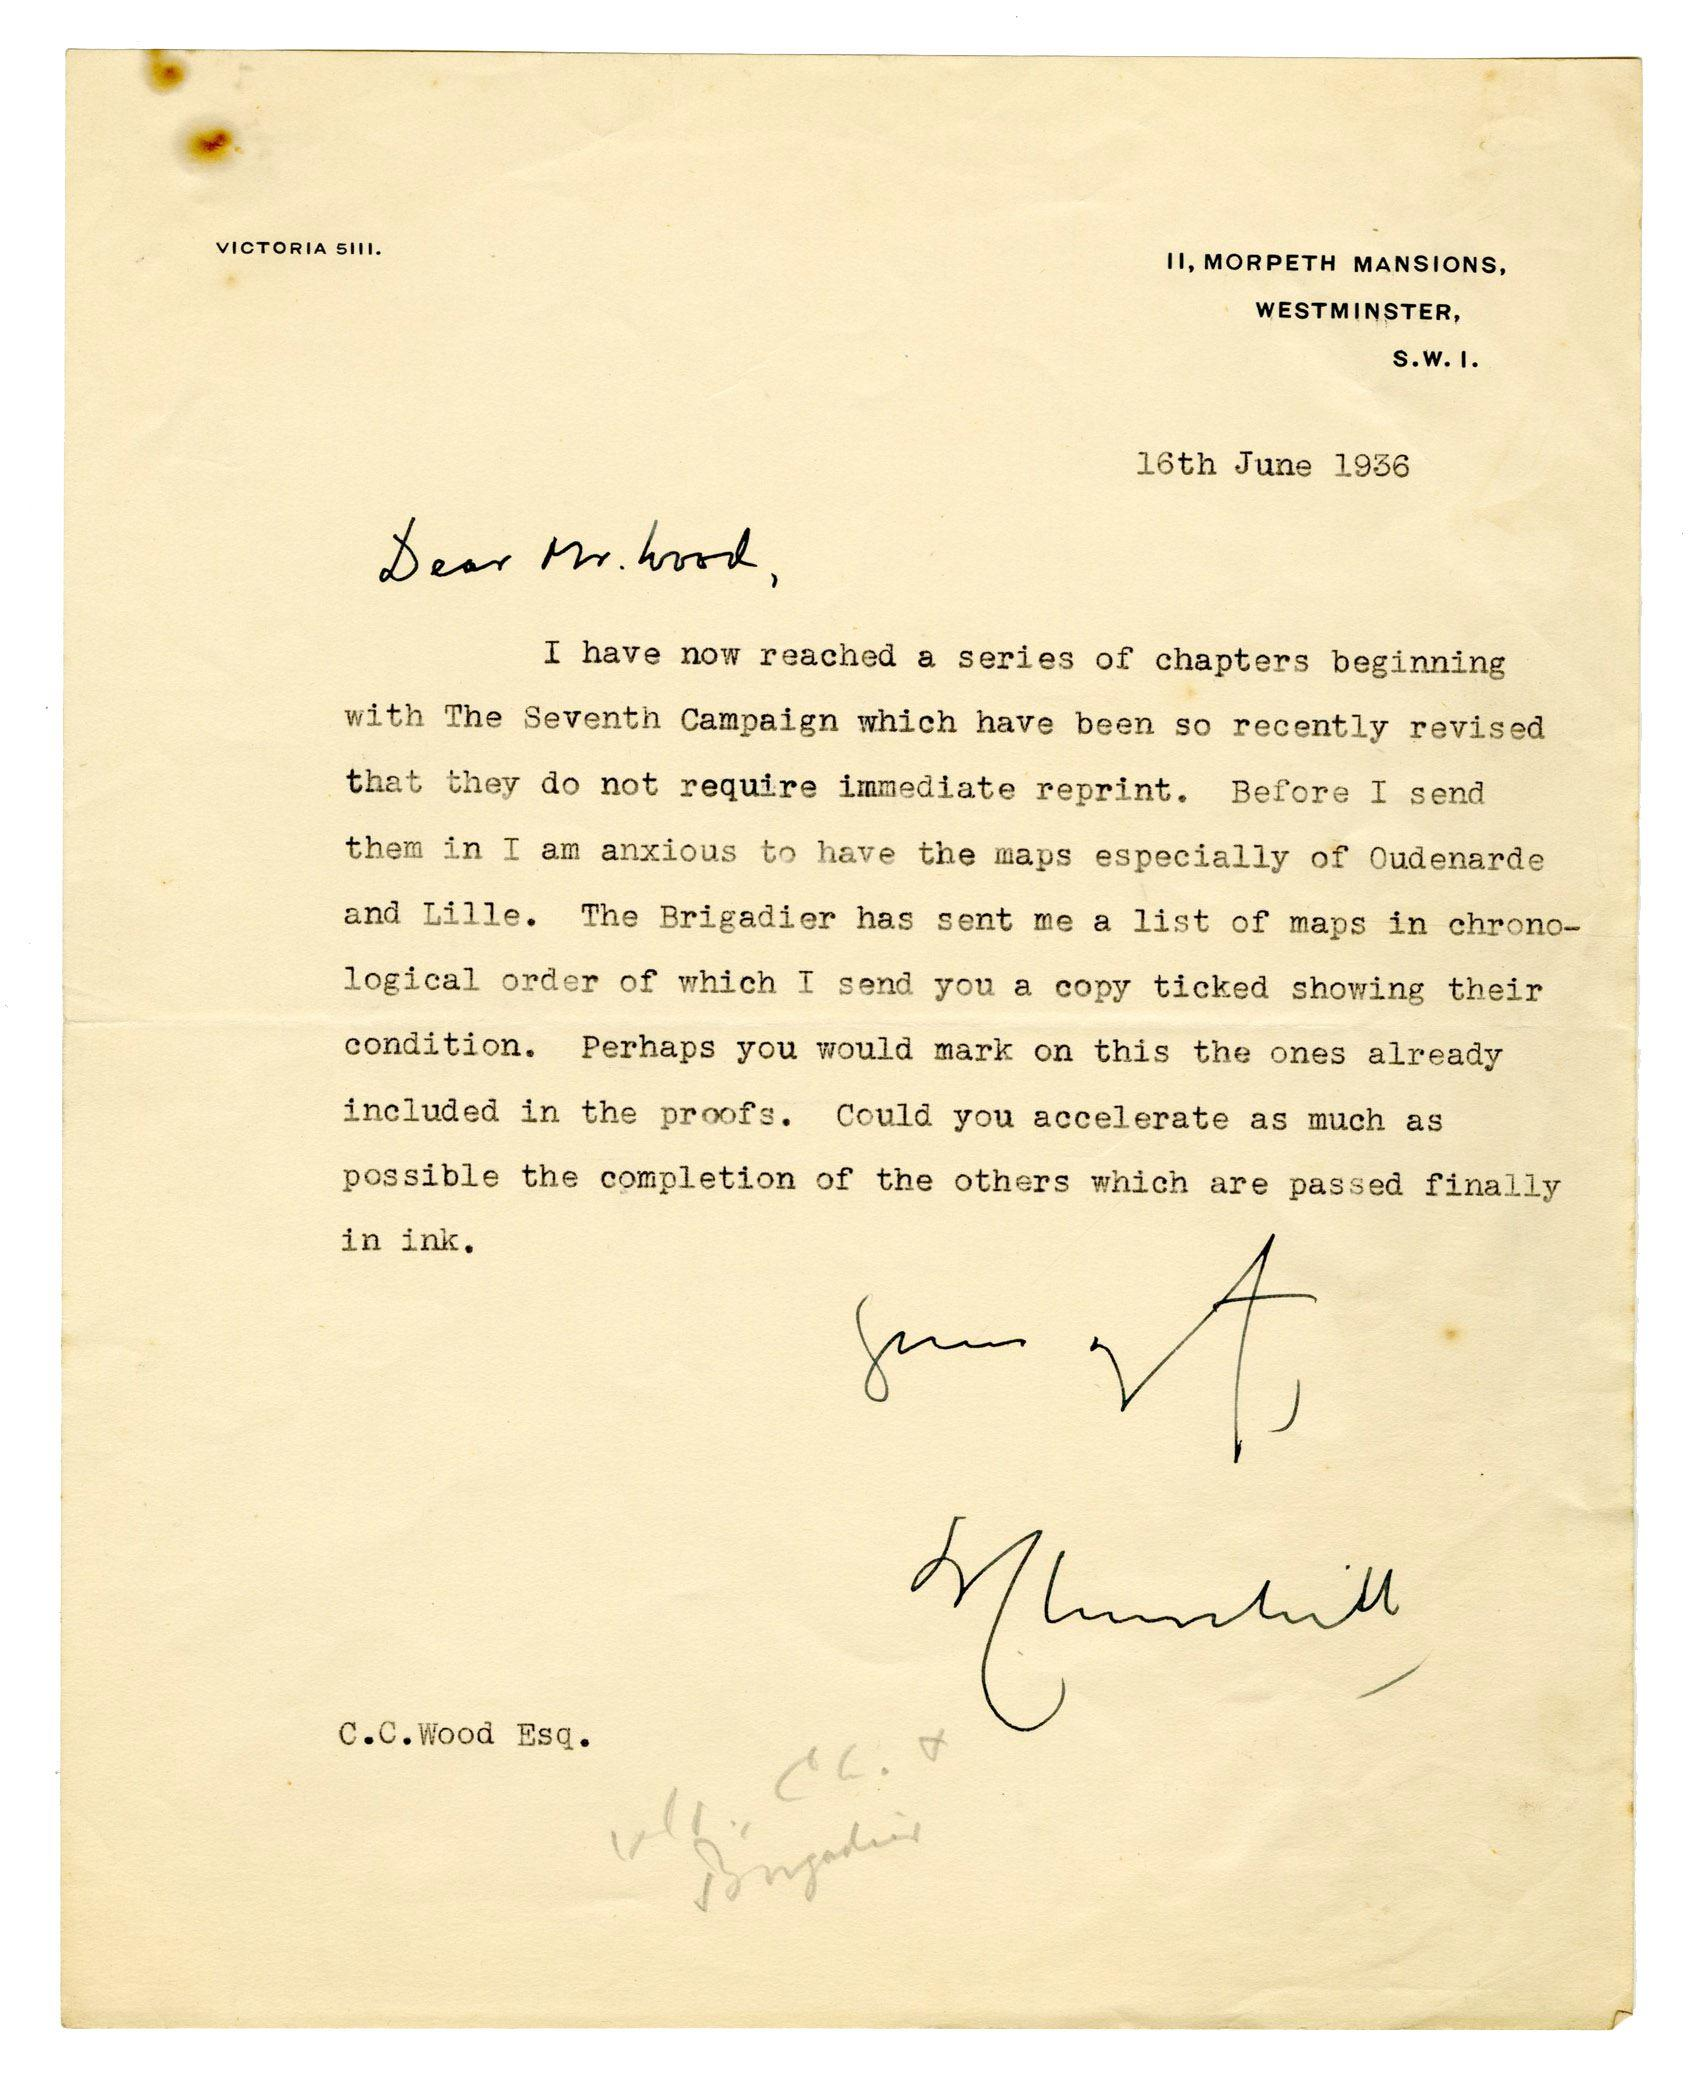 Winston Churchill Inquires About Maps for His Biography of the Duke of Marlborough